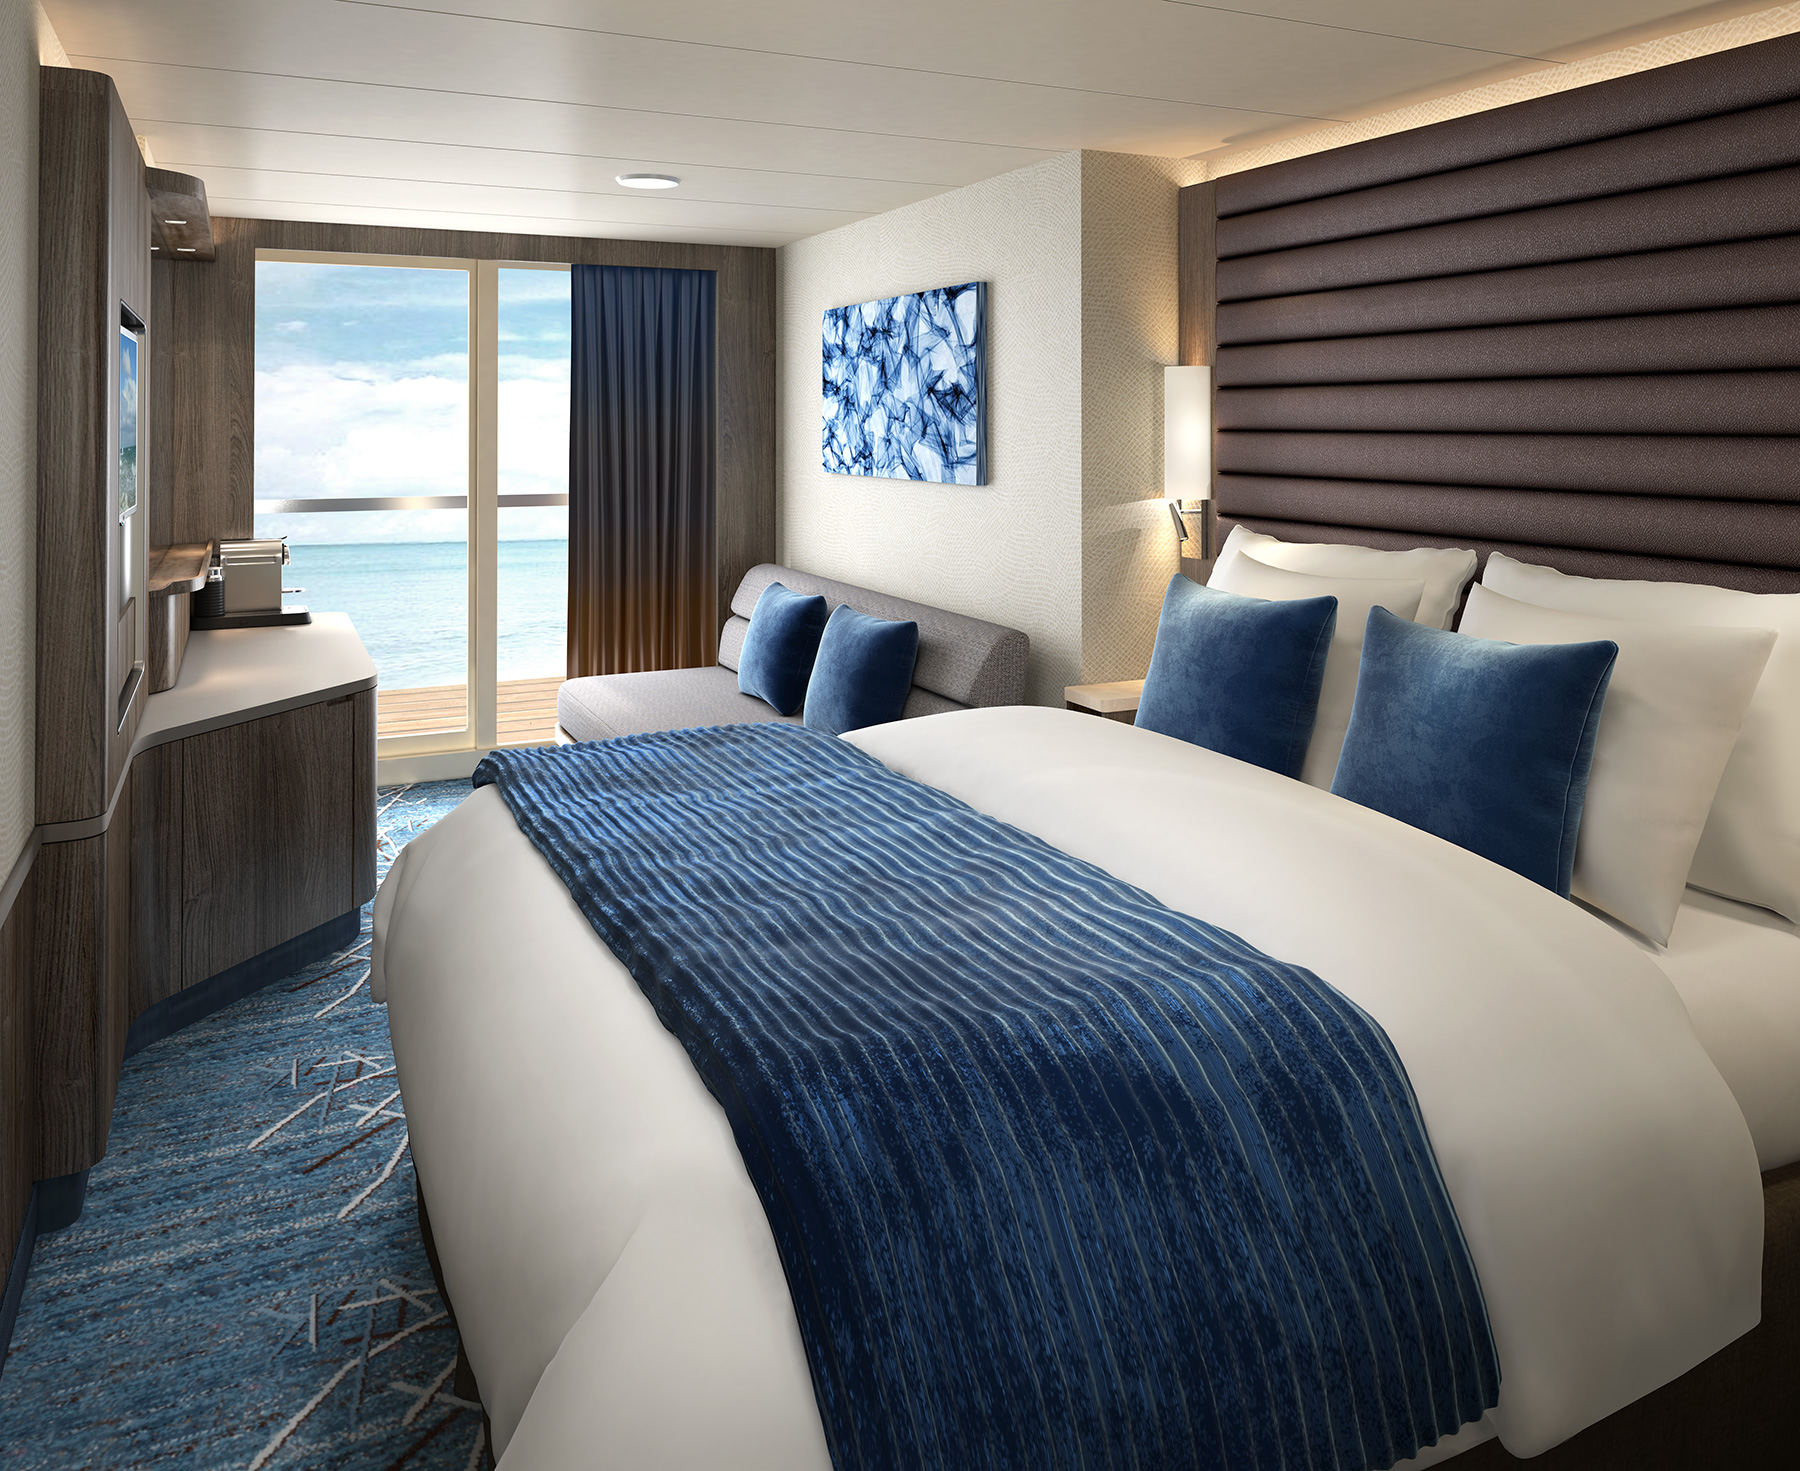 Alaska Cruise from Seattle Cruise holiday on Norwegian Bliss 4 night